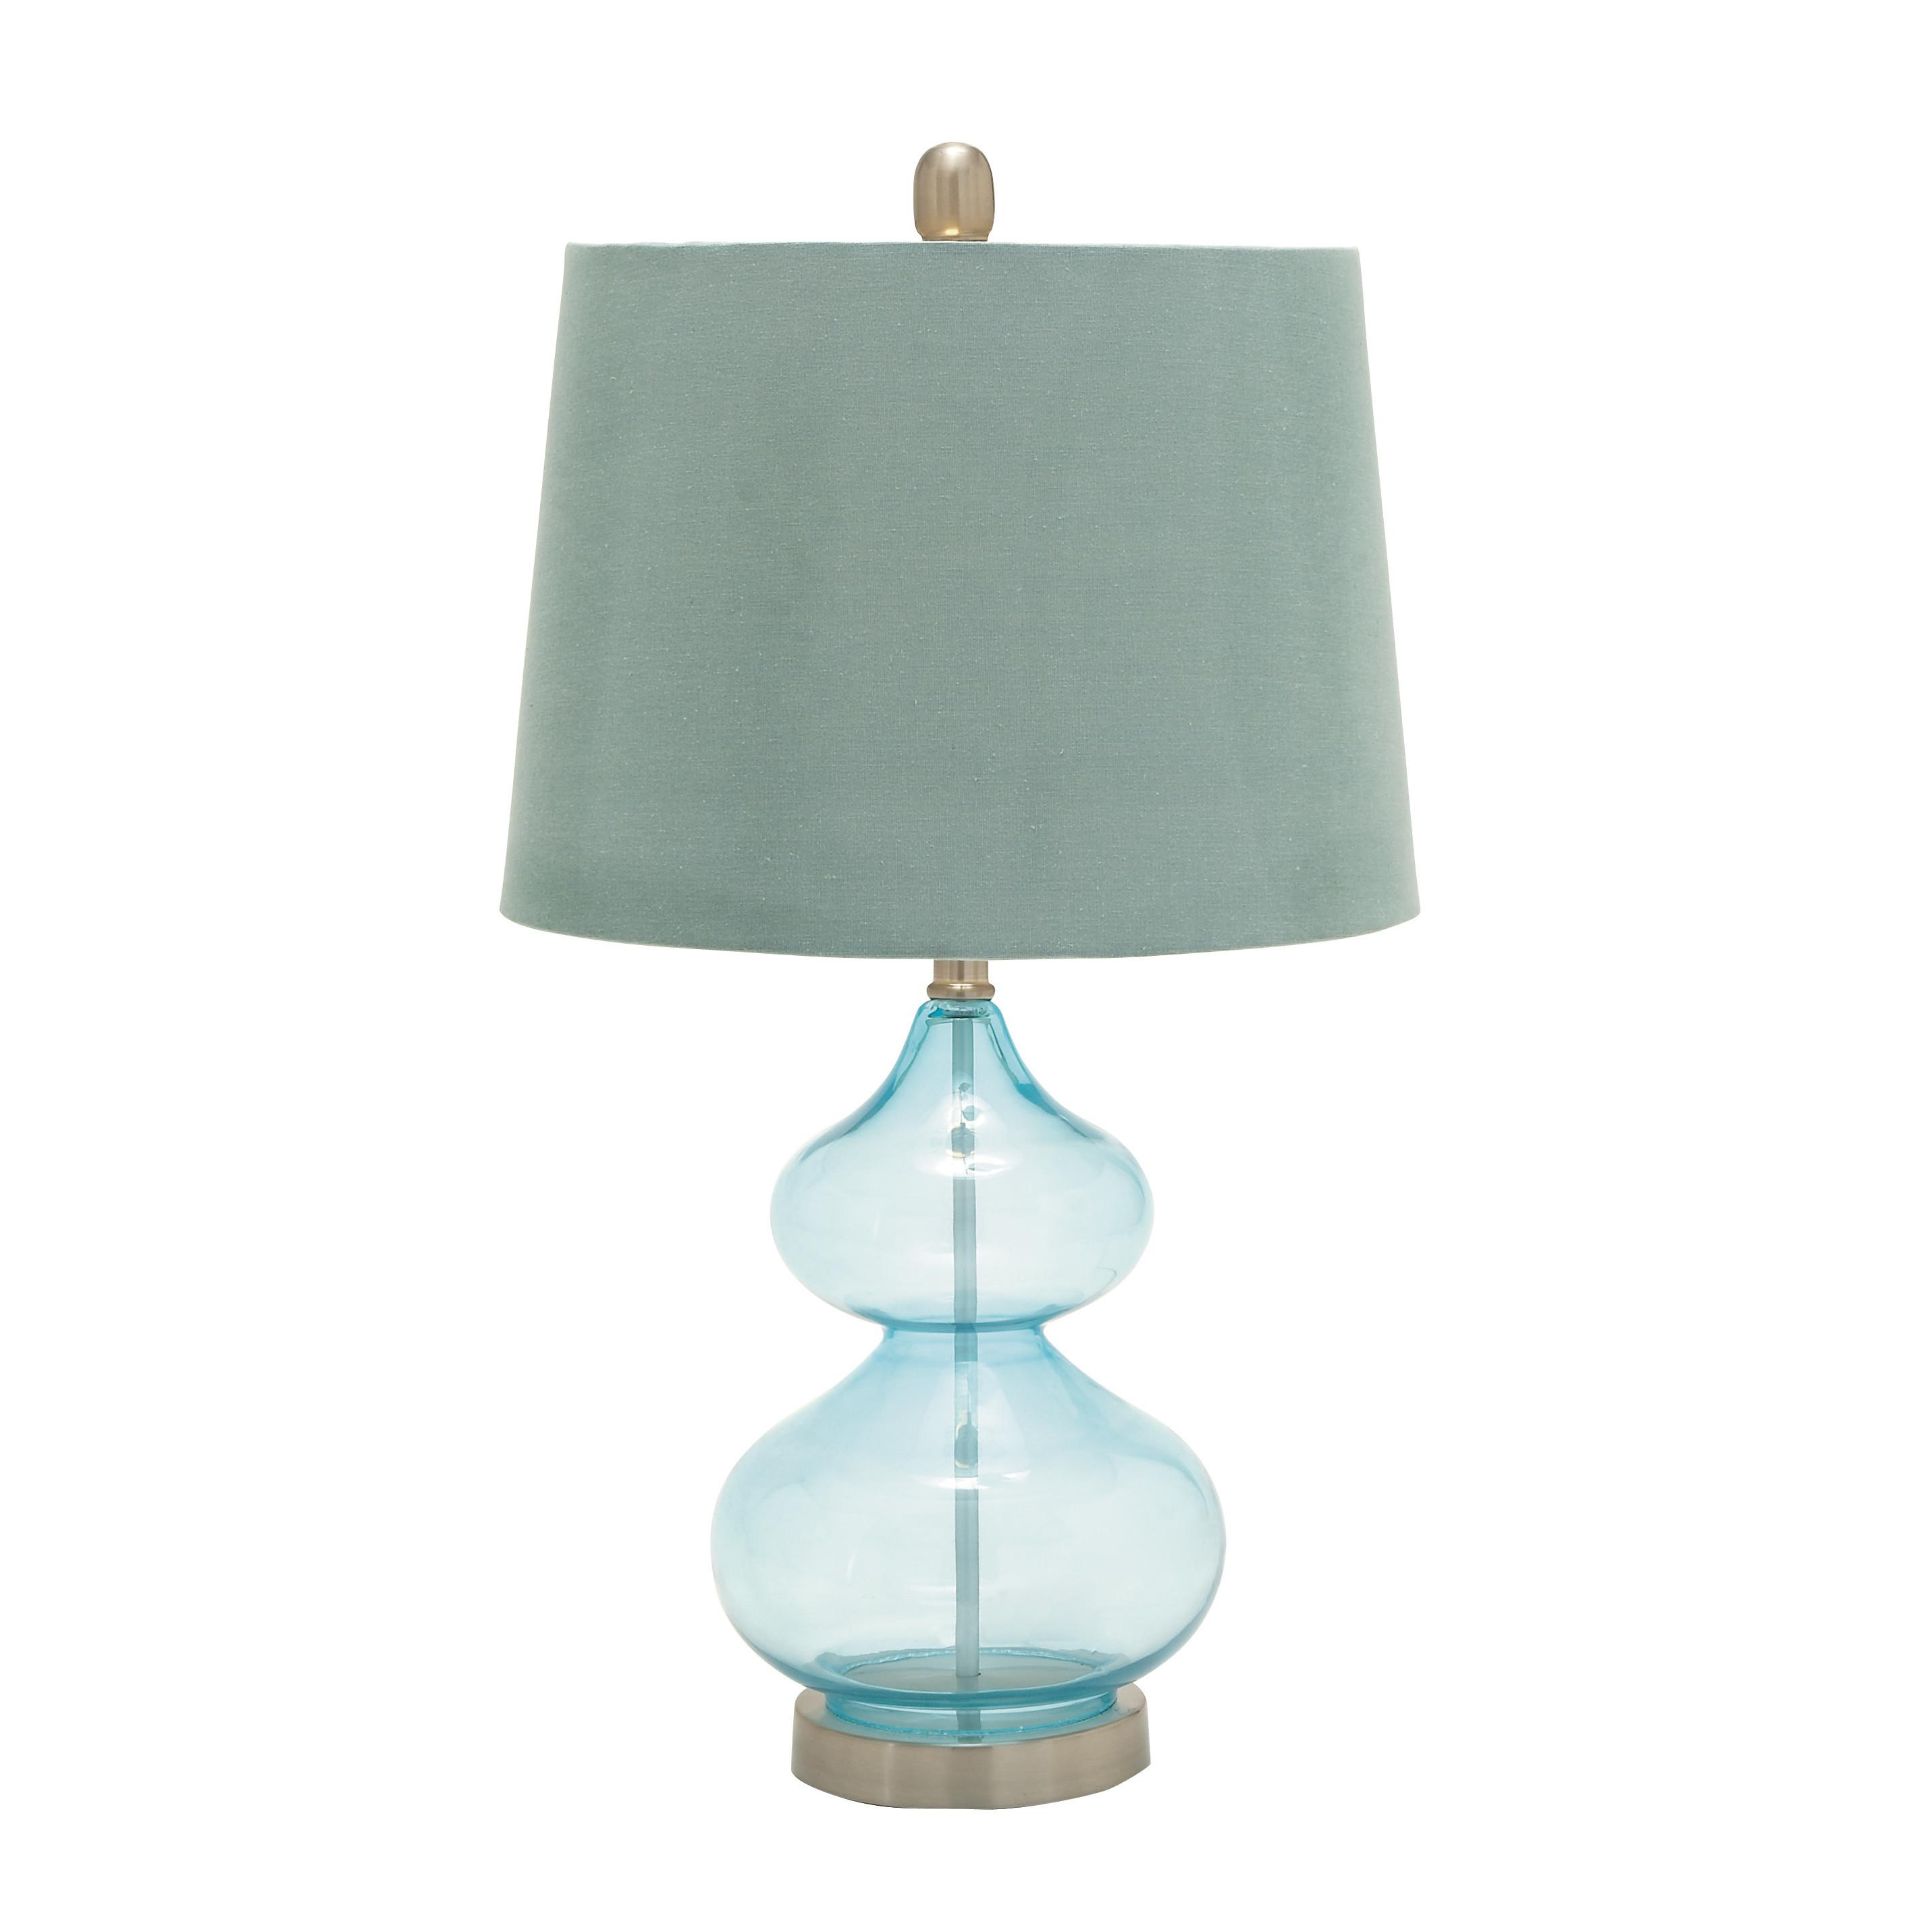 Woodland Imports Unique Table Lamp Empire Shade